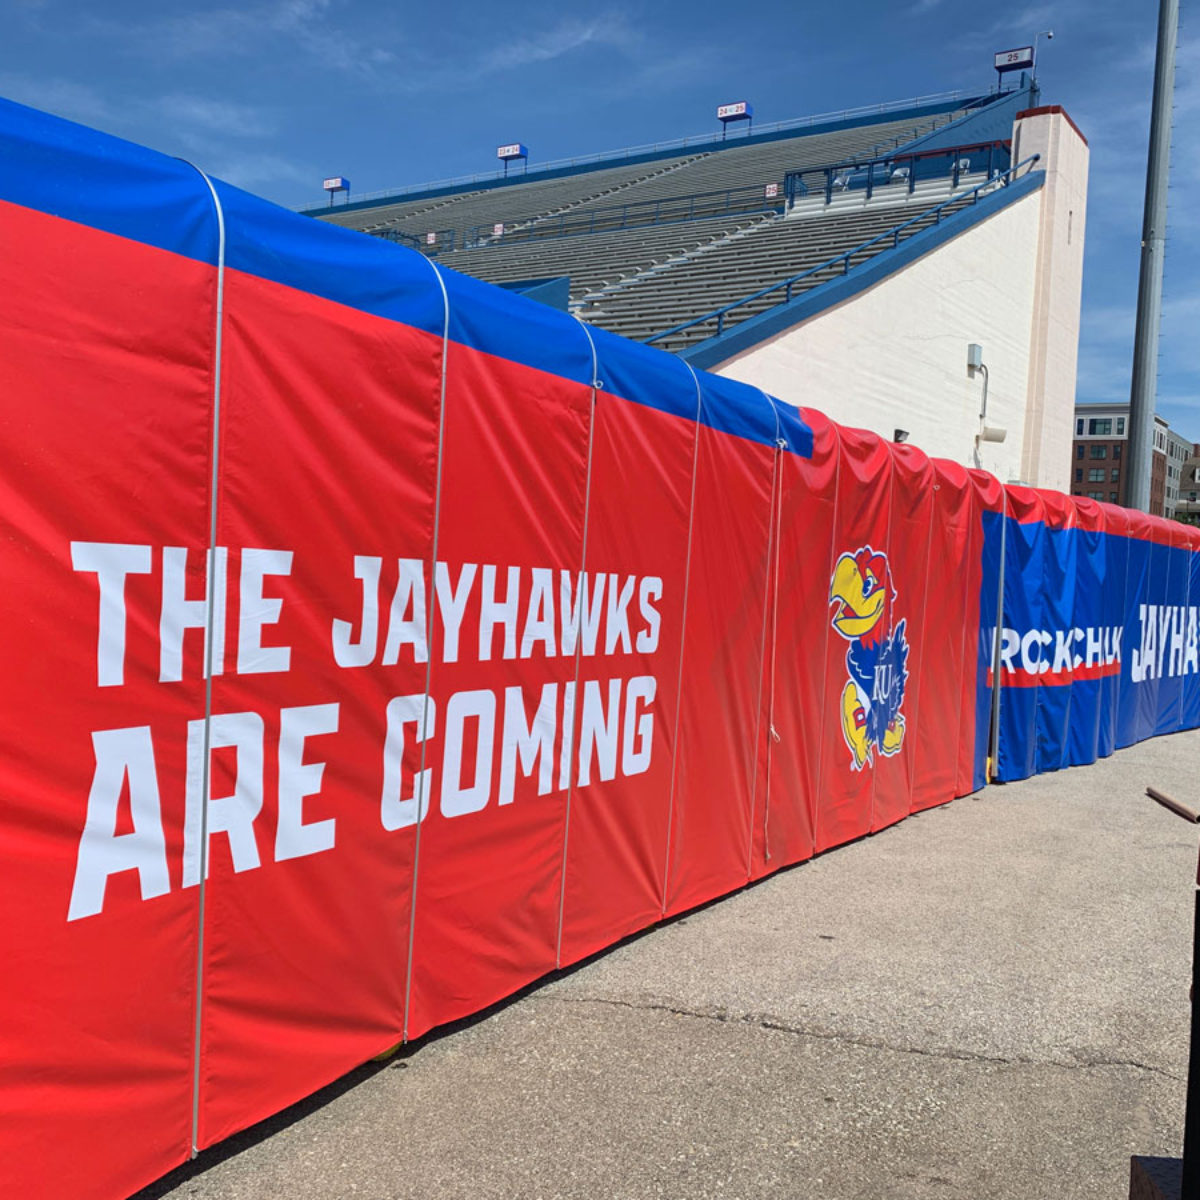 The Jayhawks Are Coming Banner sign